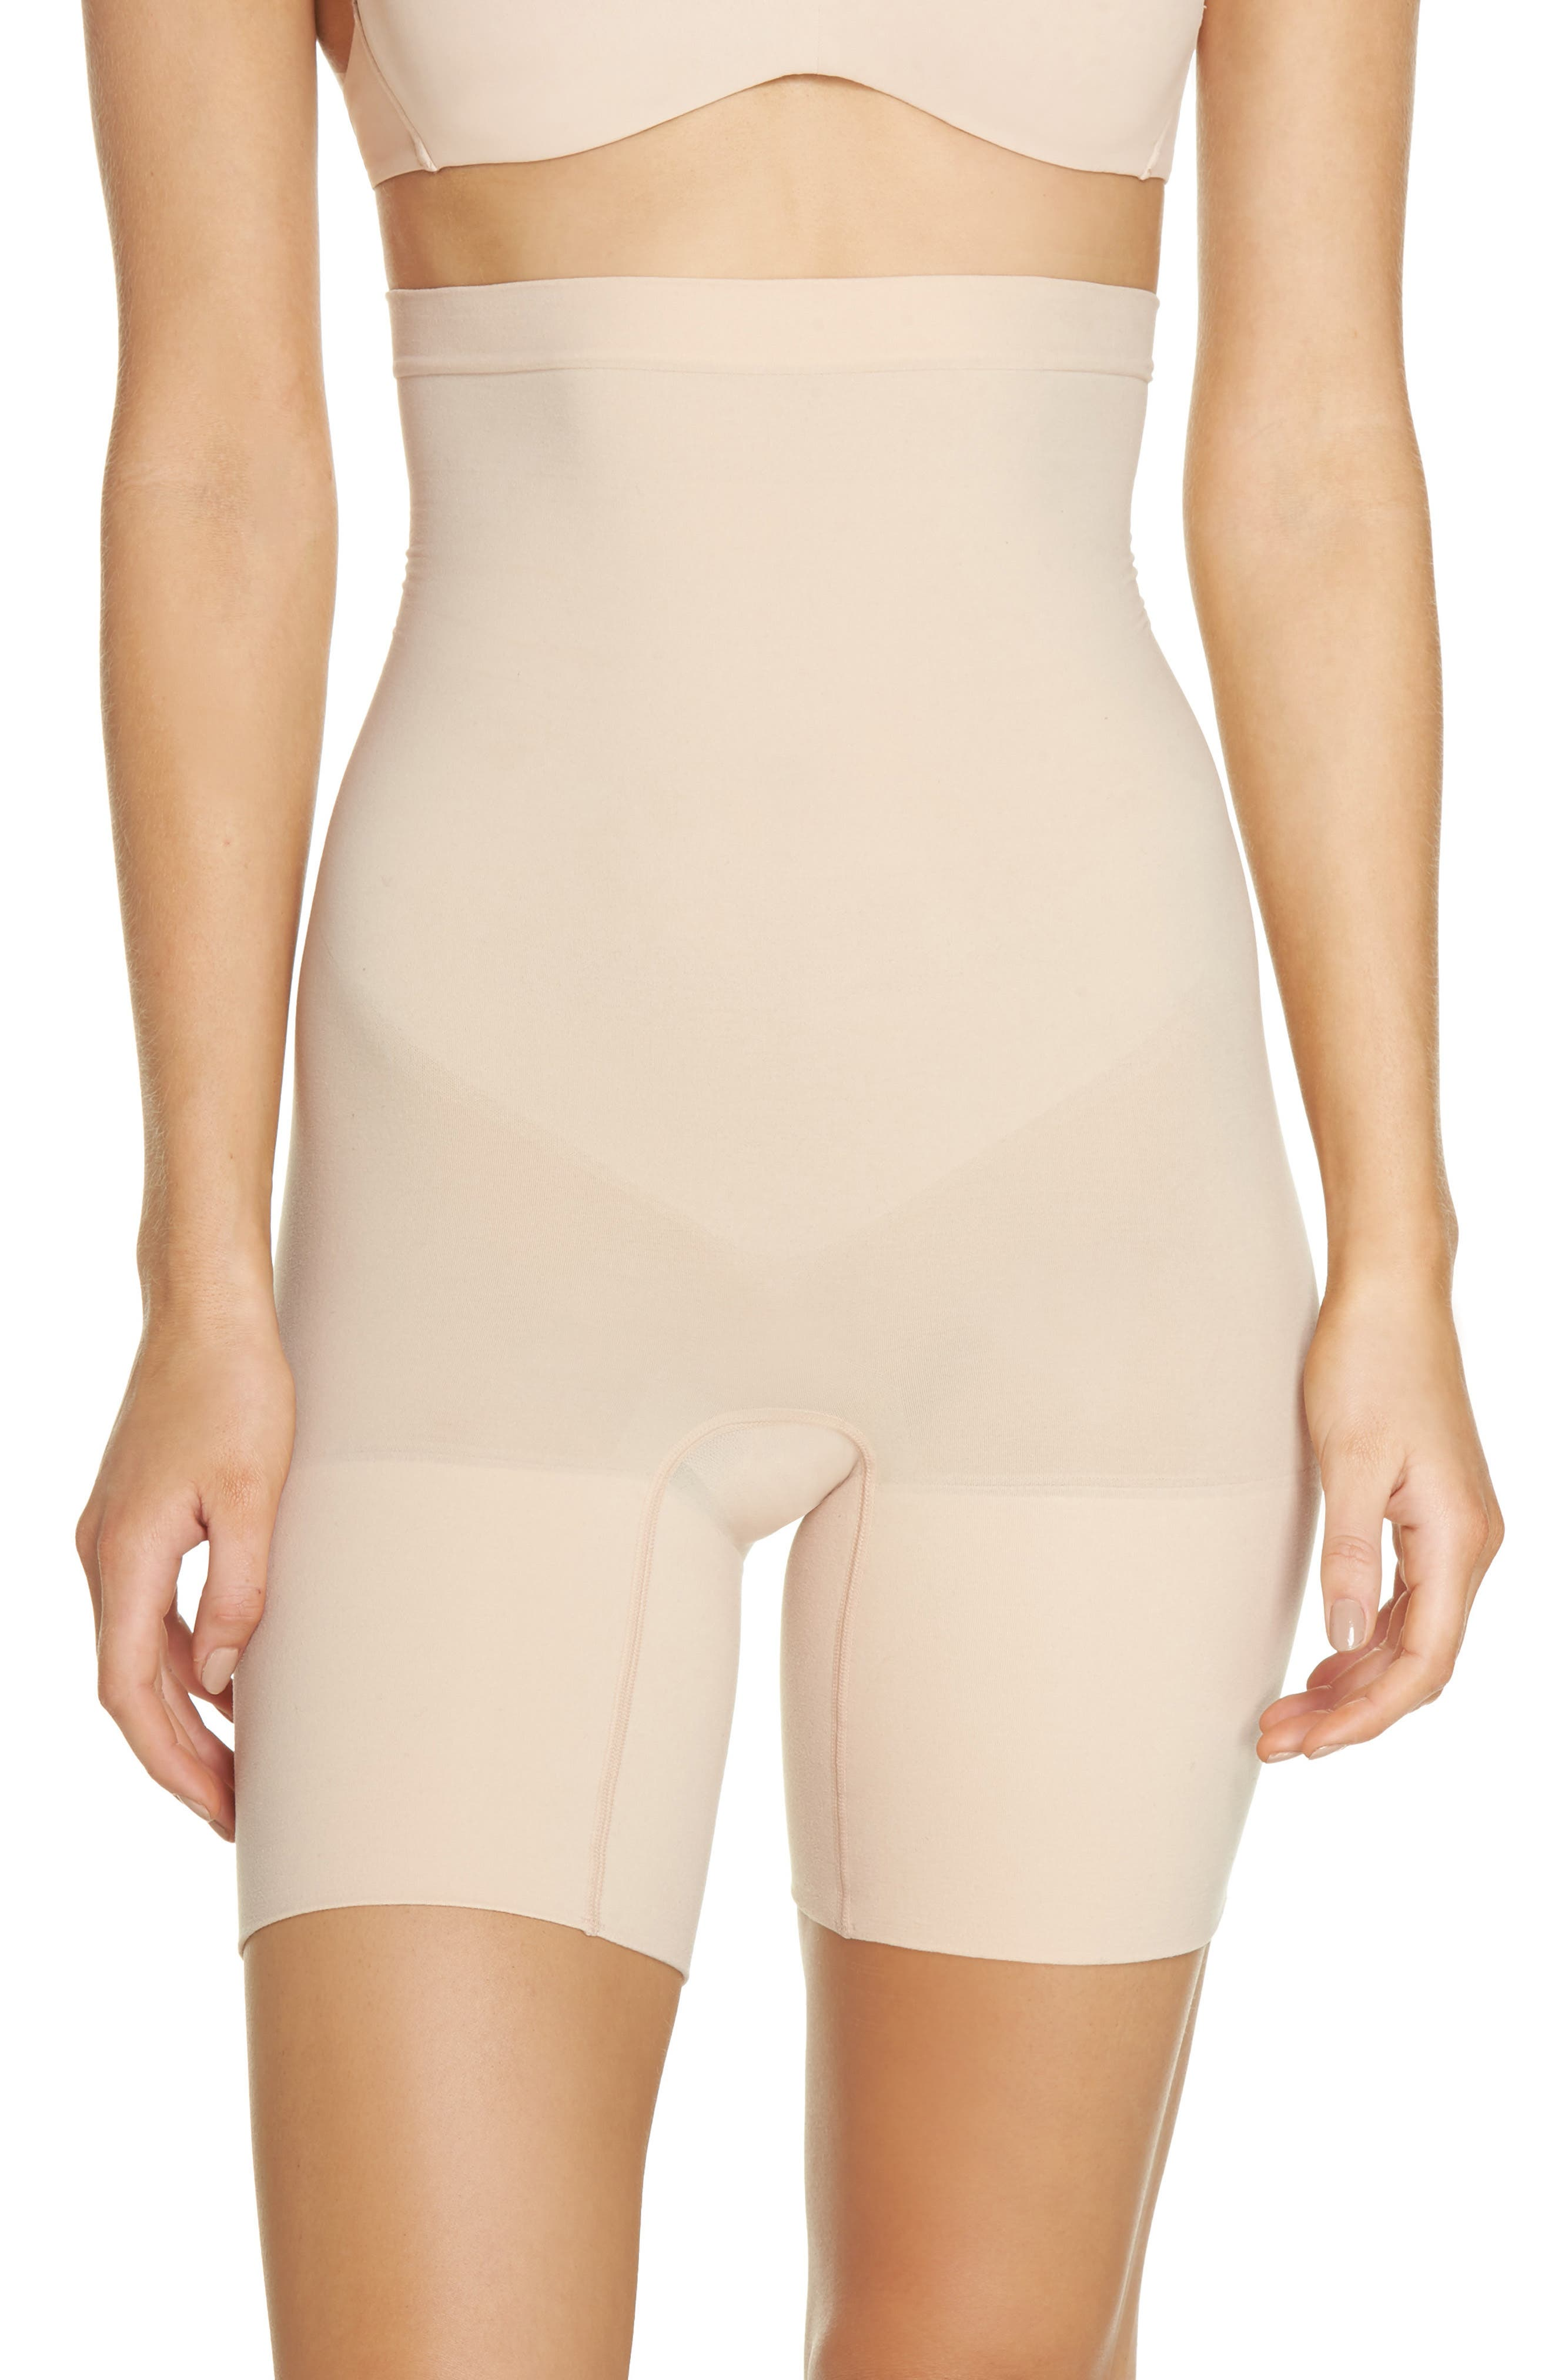 shapewear for mature women